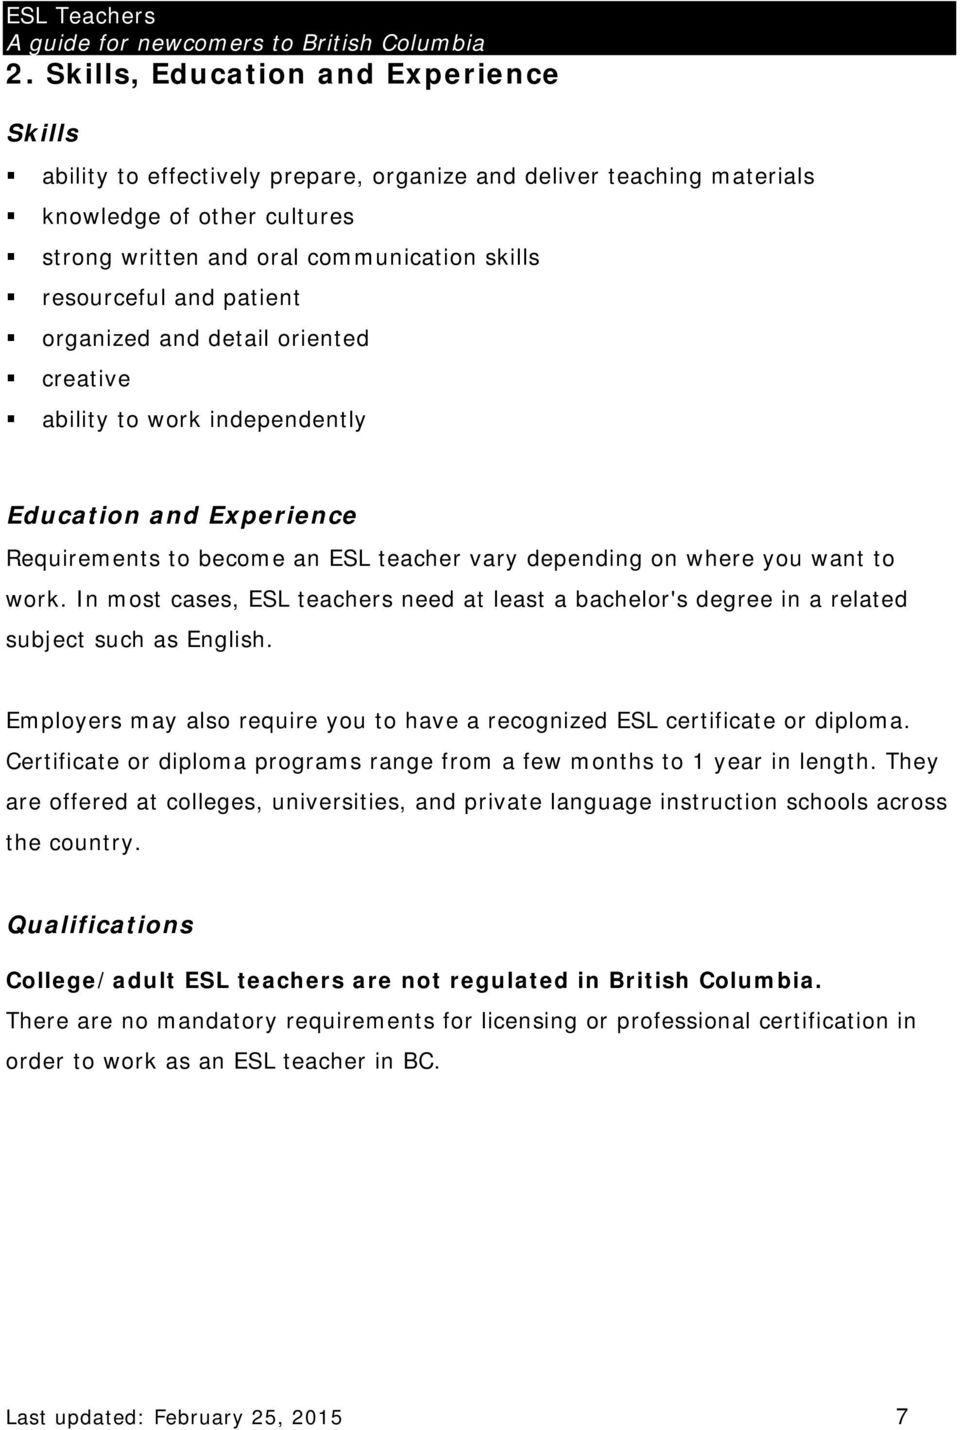 Esl Teachers A Guide For Newcomers To British Columbia Pdf